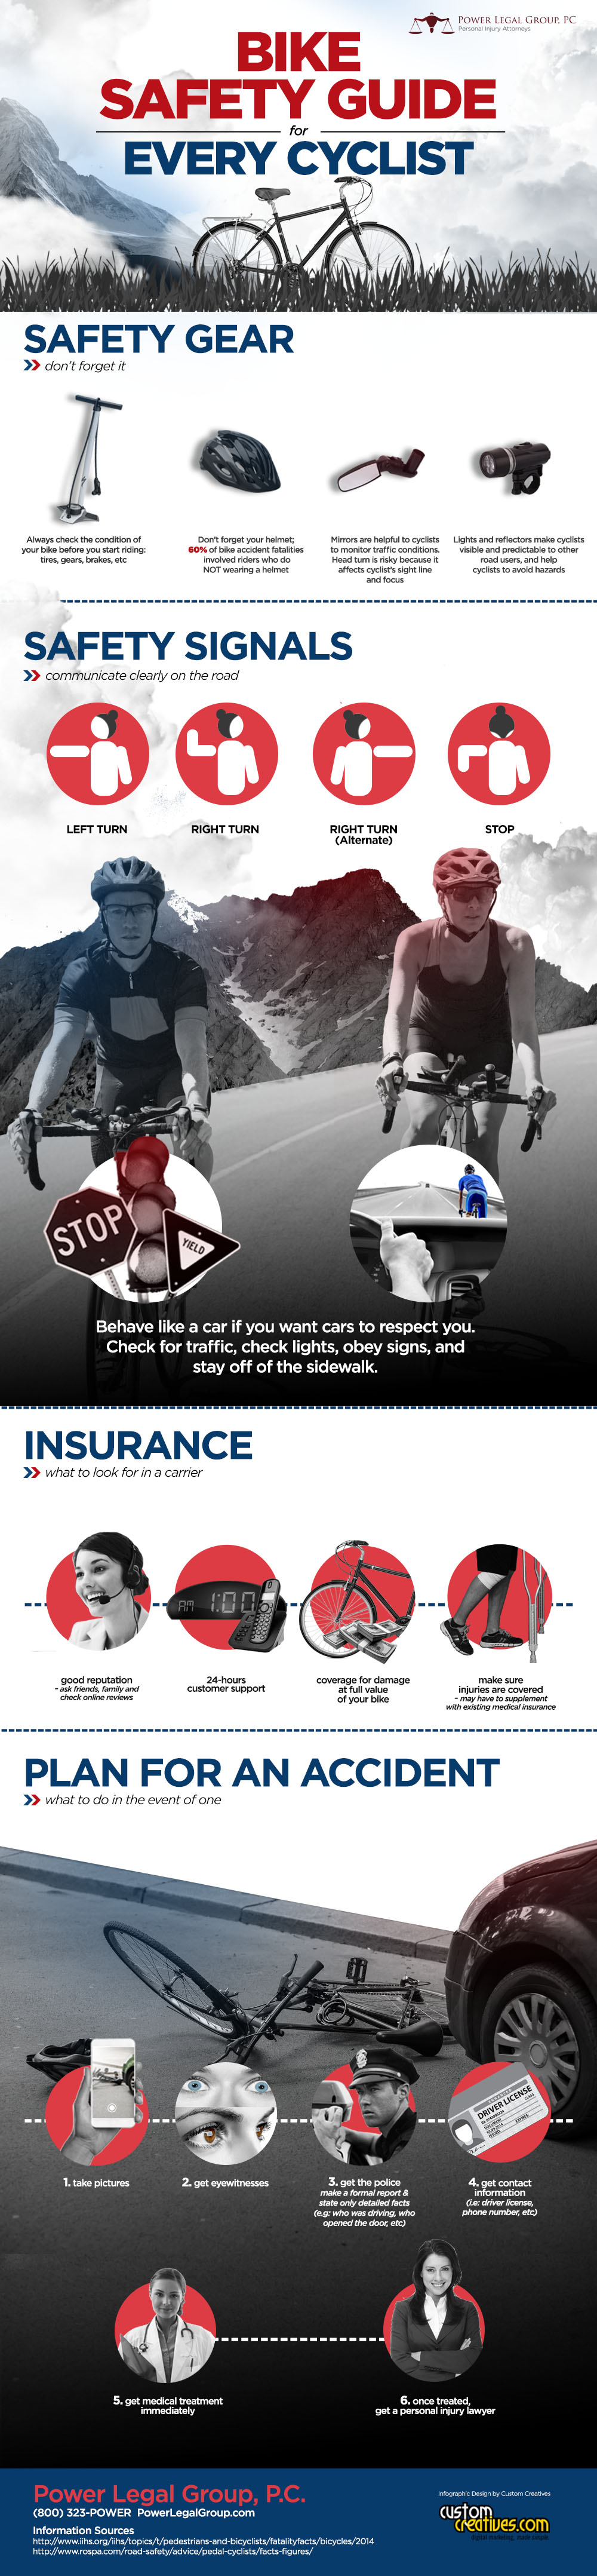 Infographic - Bike Safety - Power Legal Group